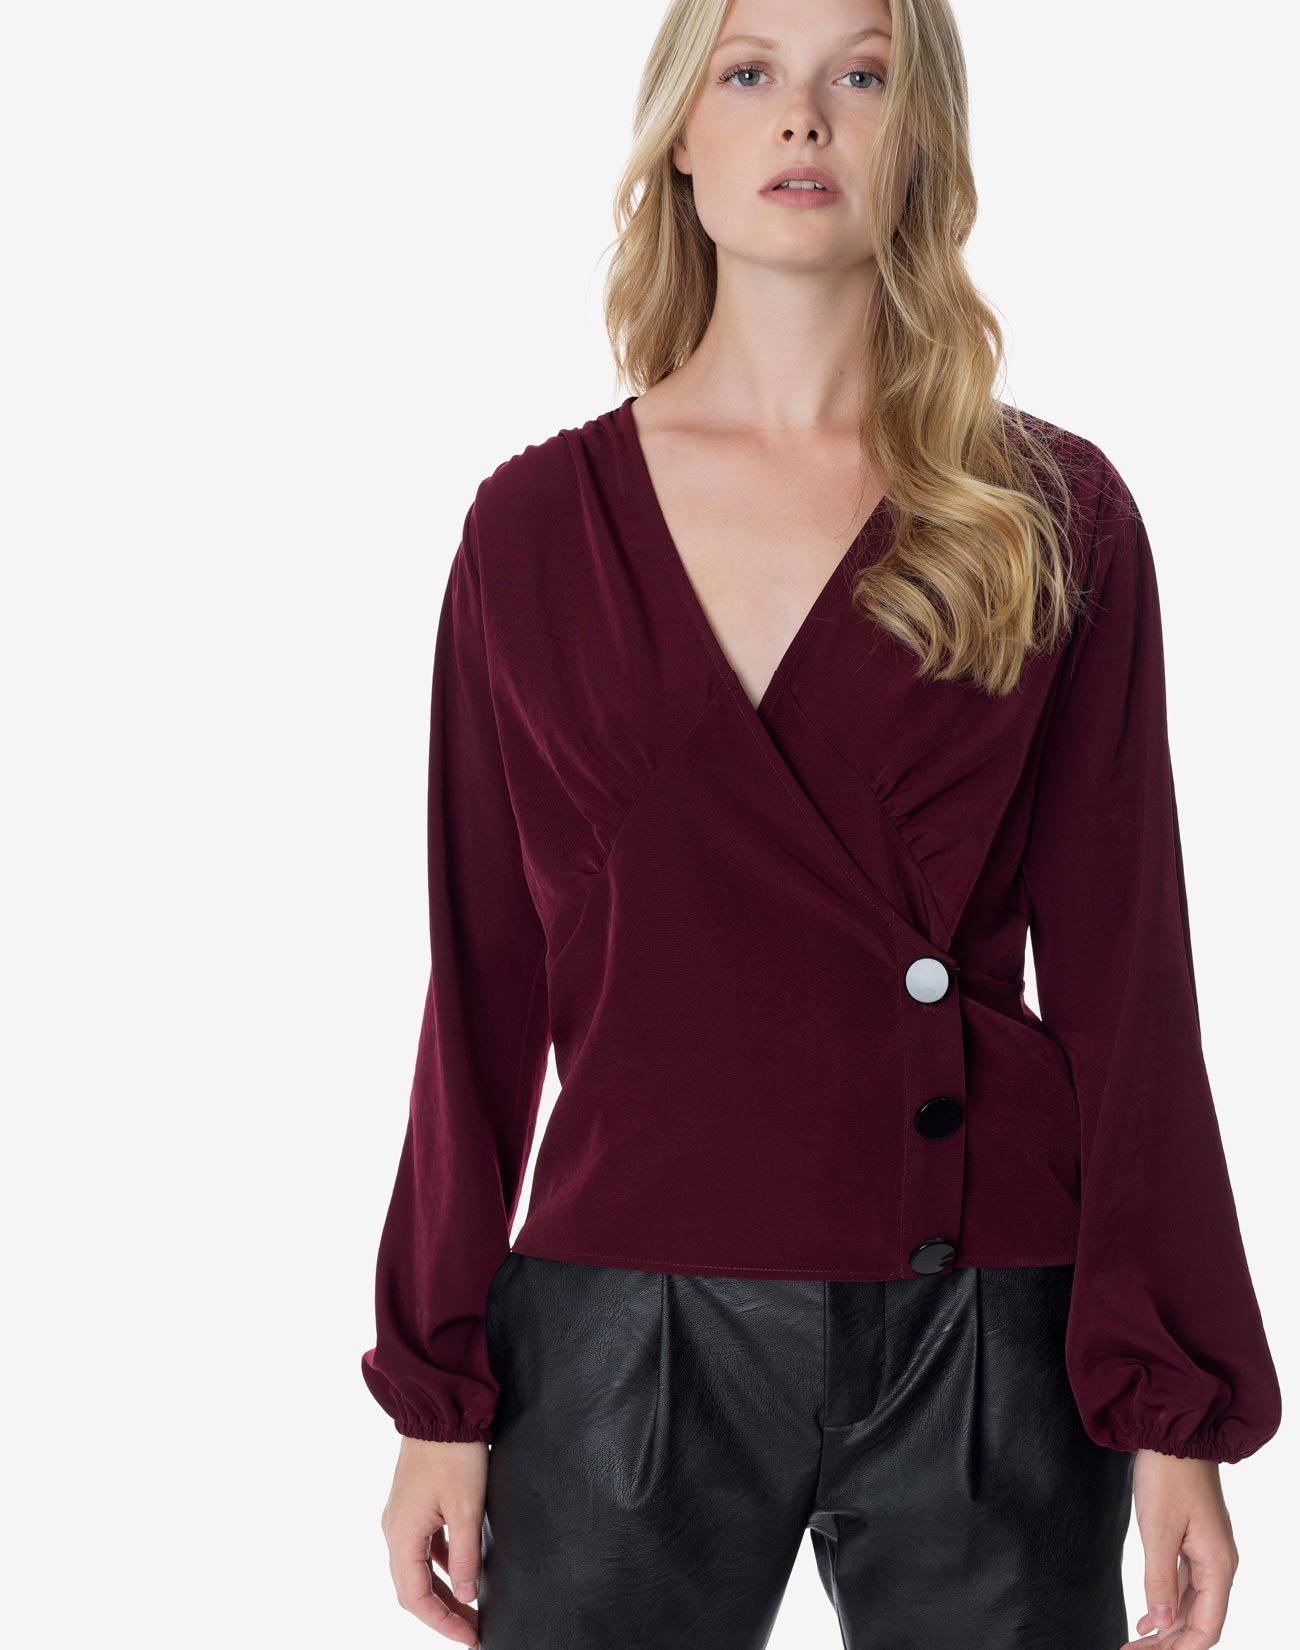 Wrap top with buttons